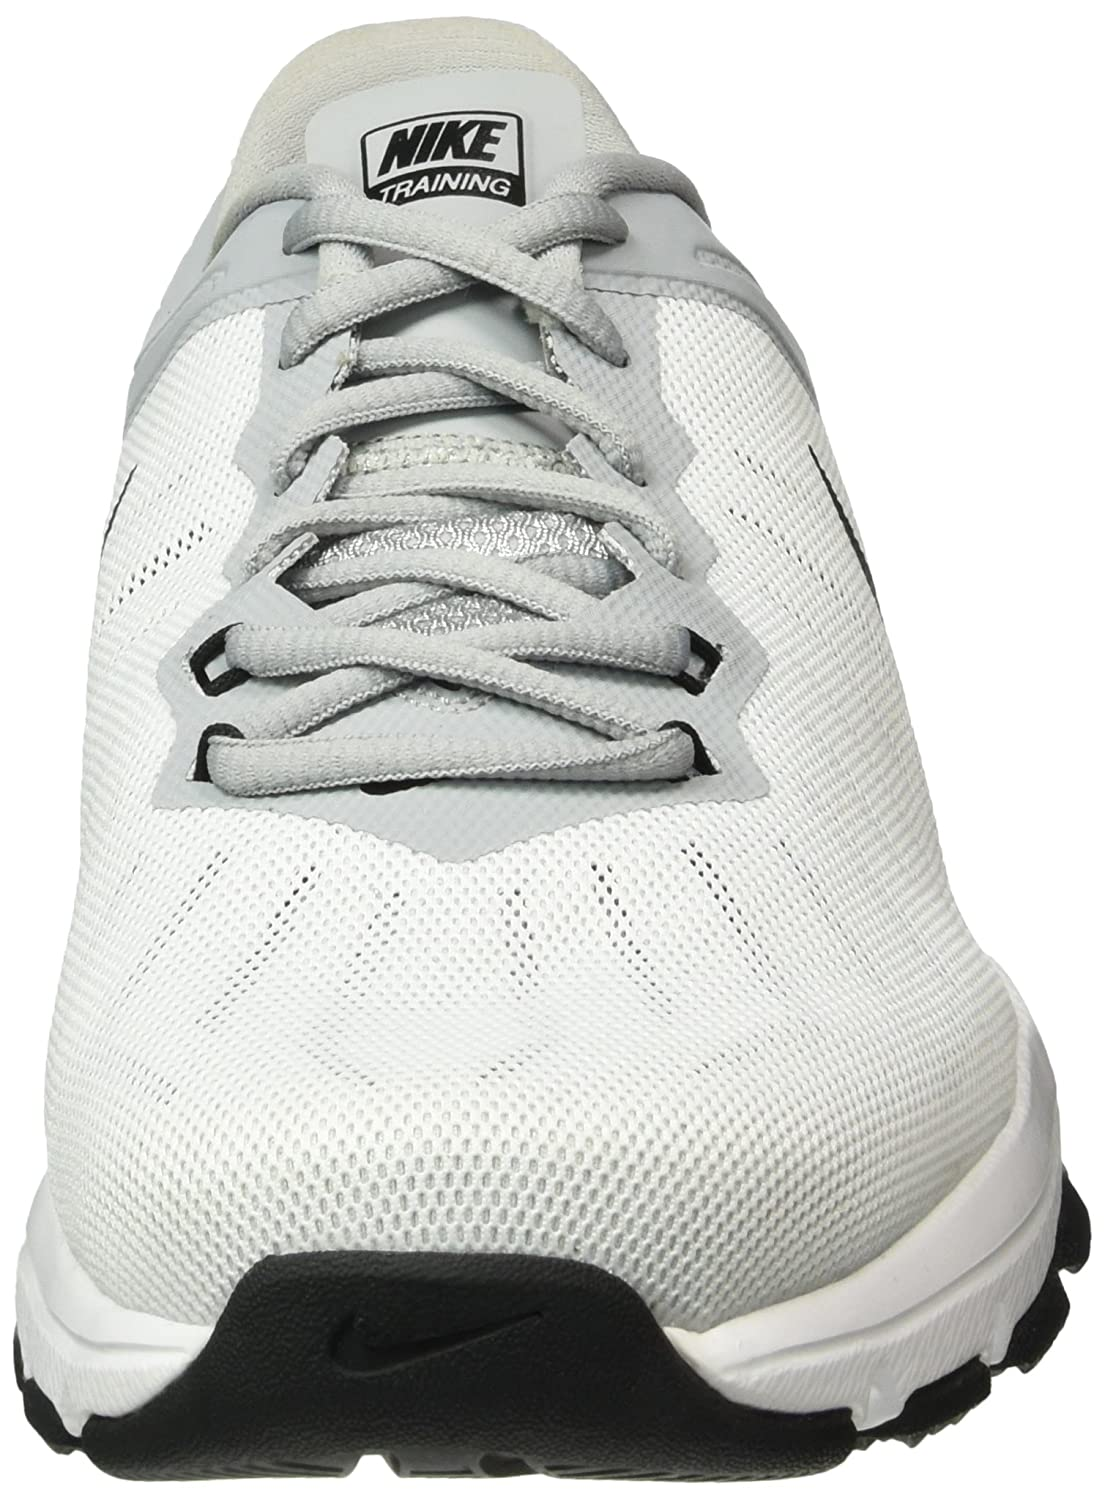 56ce1644dbd4f0 Nike Men s Air Max Full Ride Tr Fitness Shoes Grey  Amazon.co.uk  Shoes    Bags